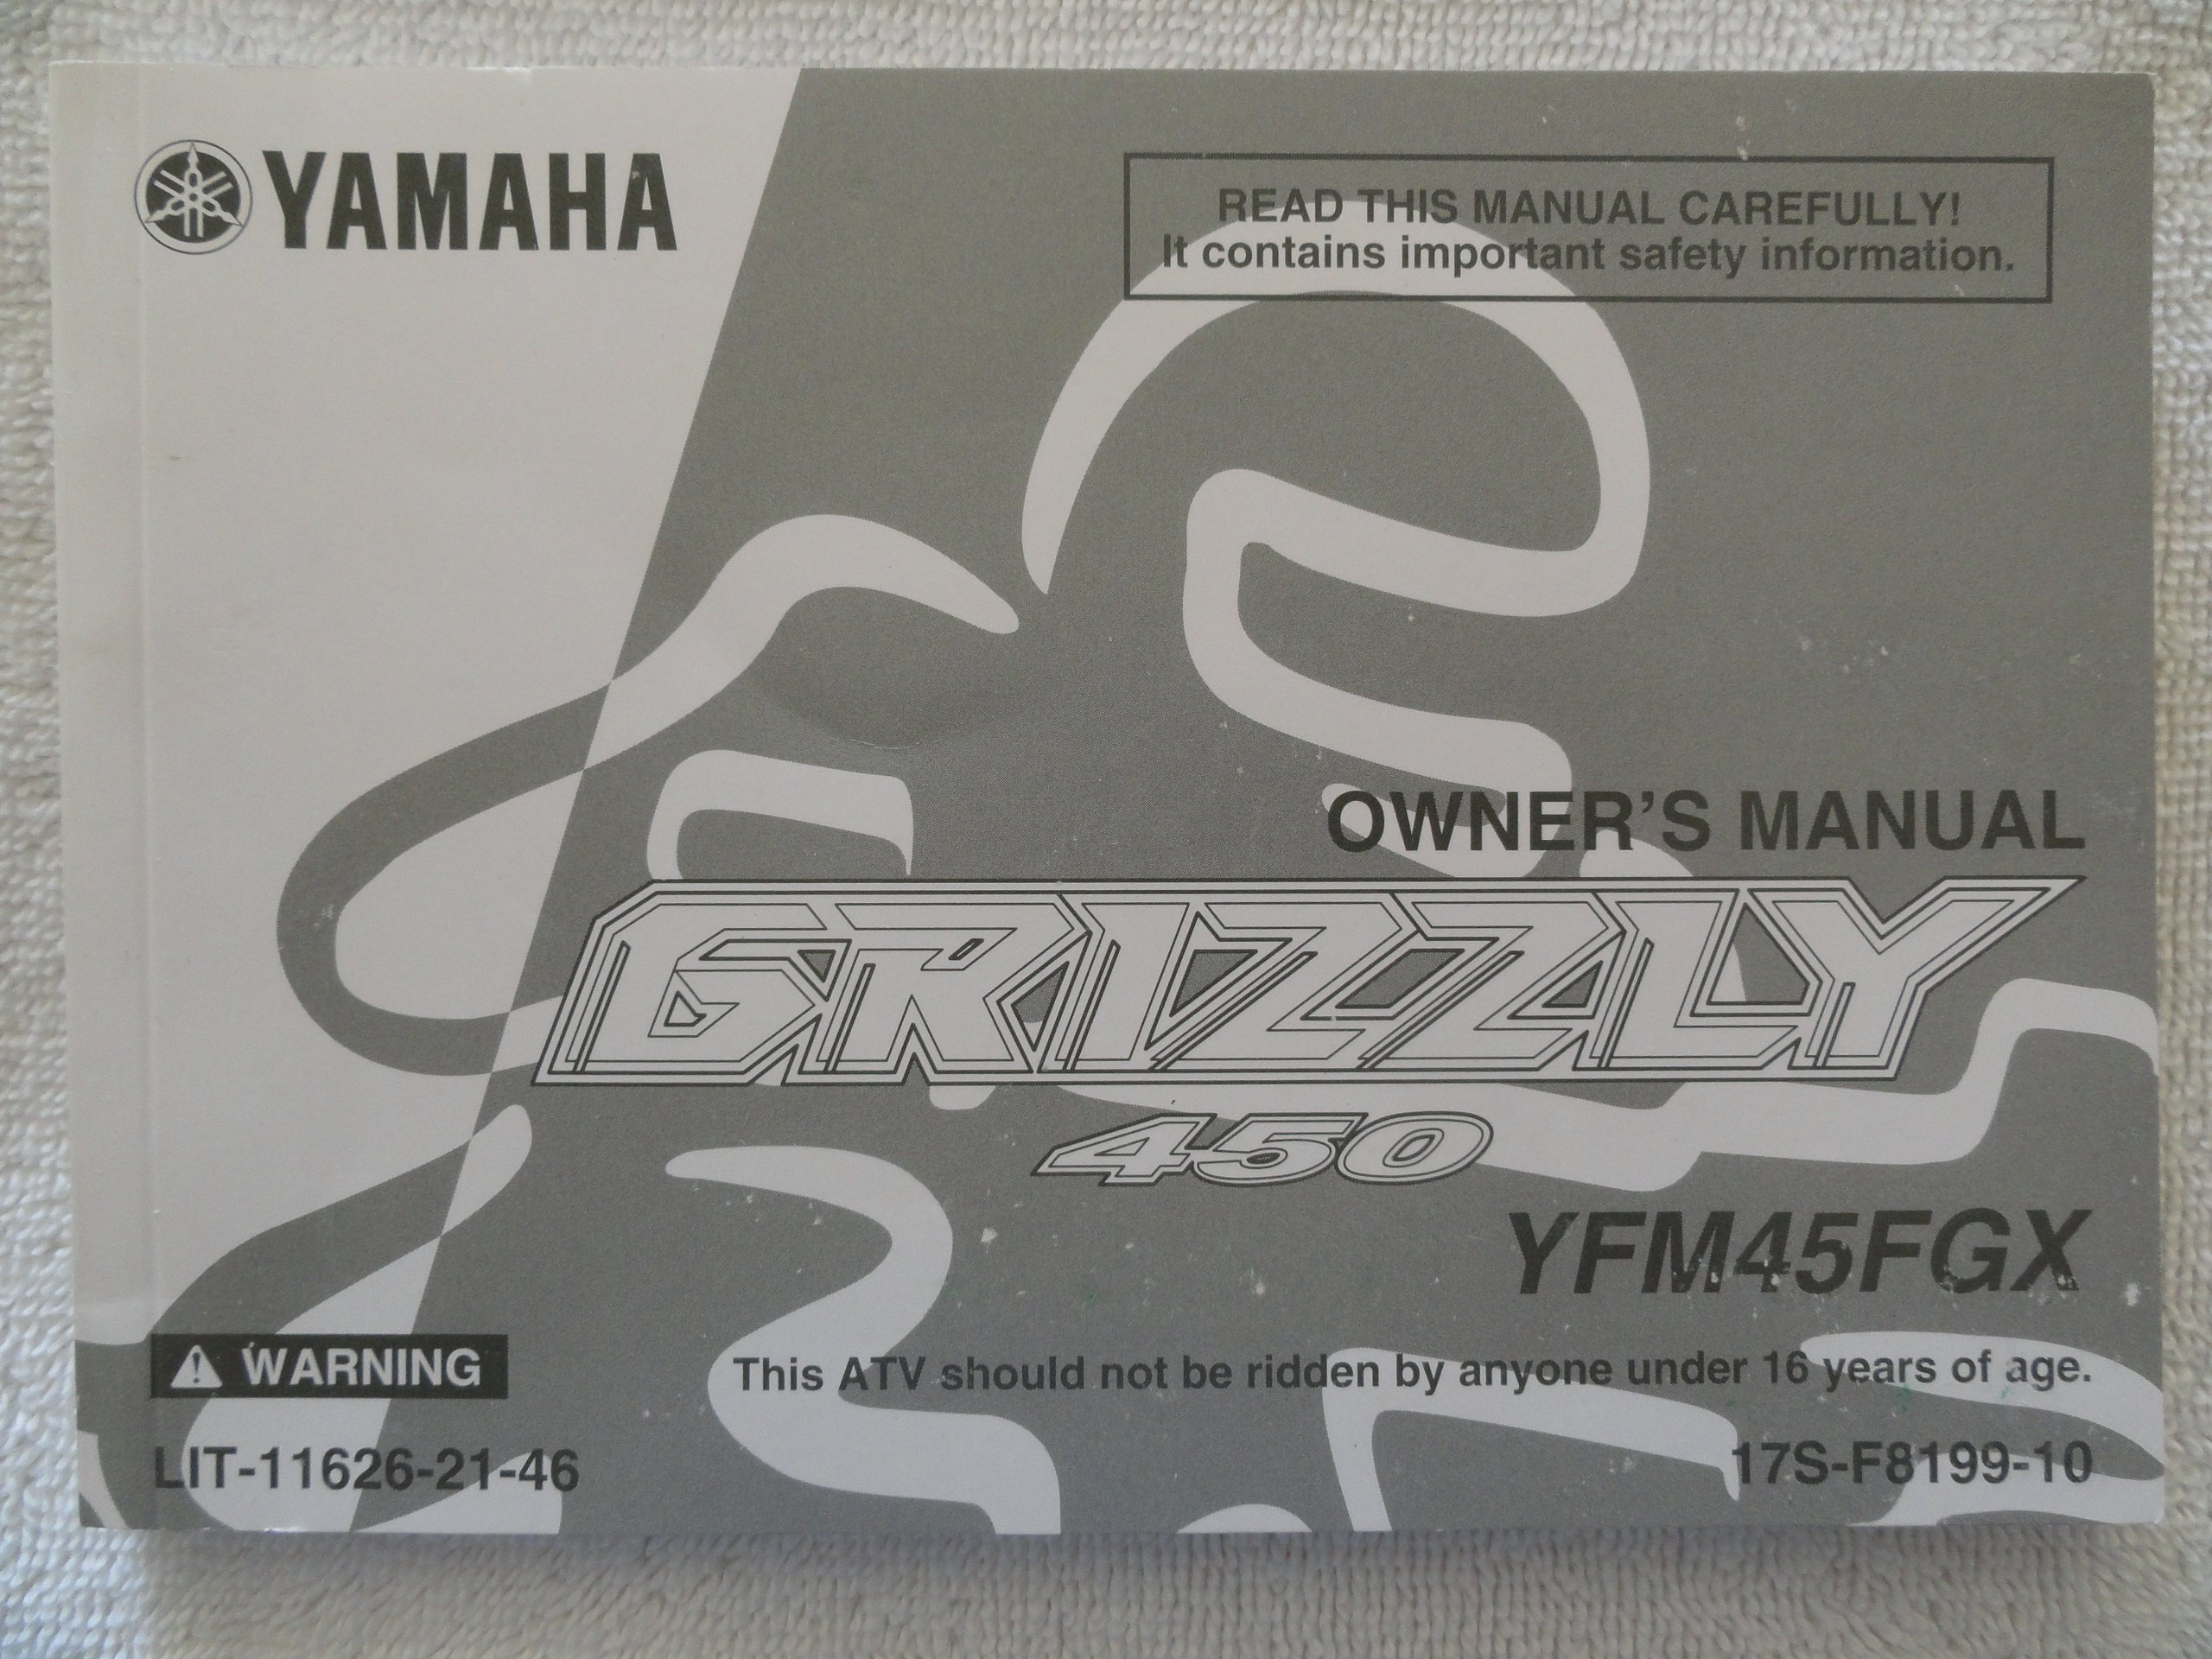 2007 2008 Yamaha Grizzly 450 Owner's Manual YFM 45 FGX: Yamaha: Amazon.com:  Books